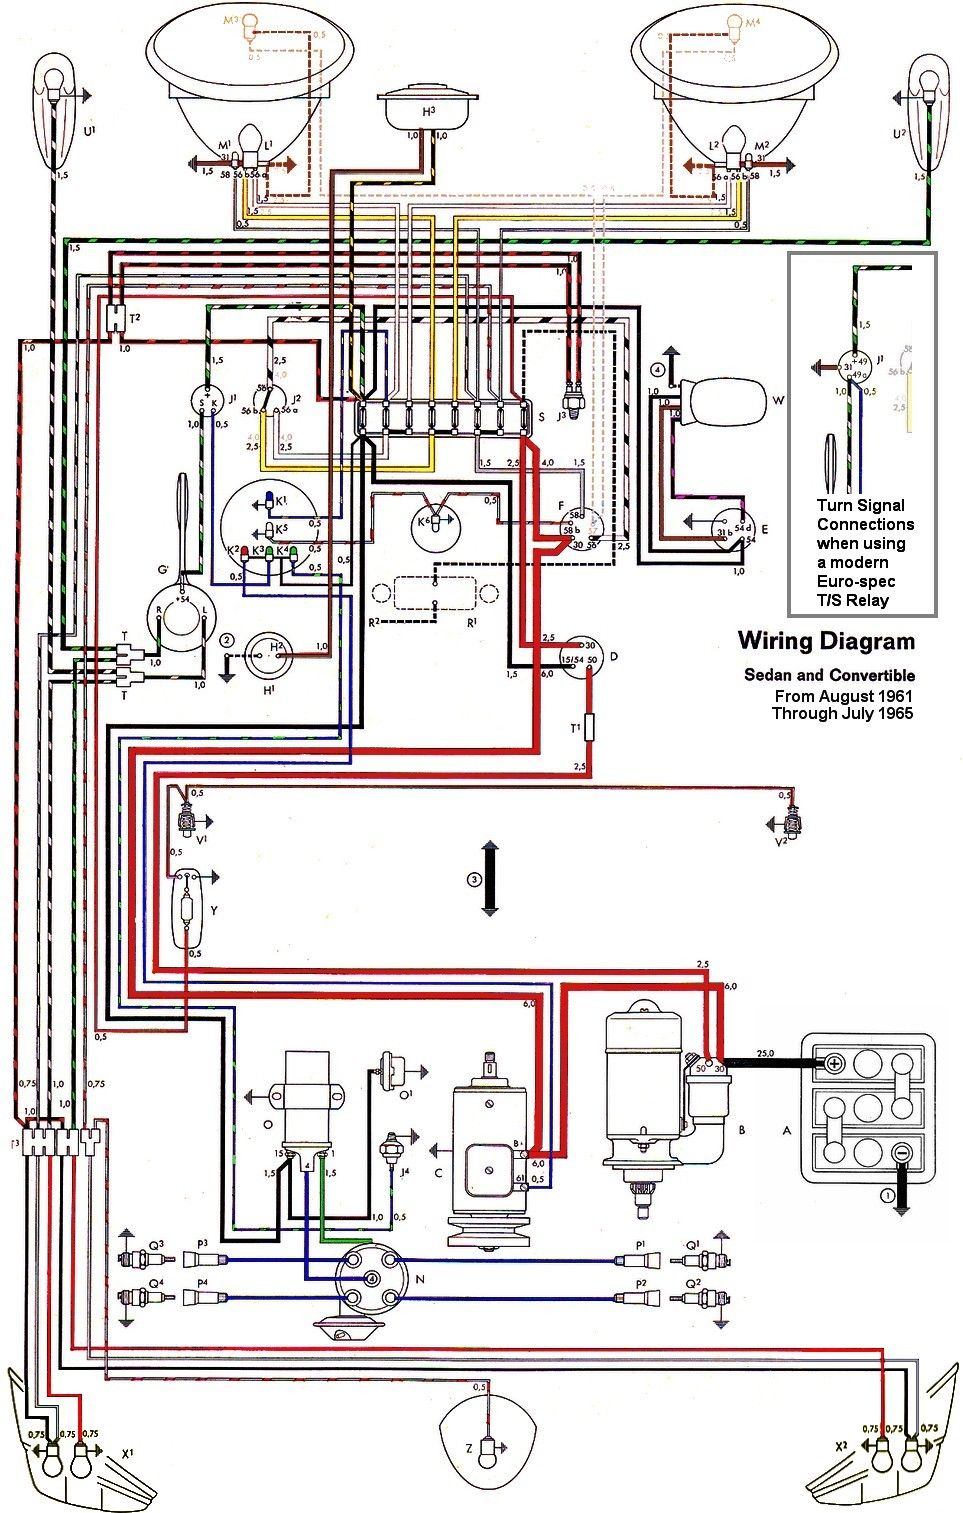 wiring diagram vw beetle sedan and convertible 1961 1965 vw rh pinterest com 2001 Volkswagen Beetle Wiring Diagram 2001 Volkswagen Beetle Wiring Diagram